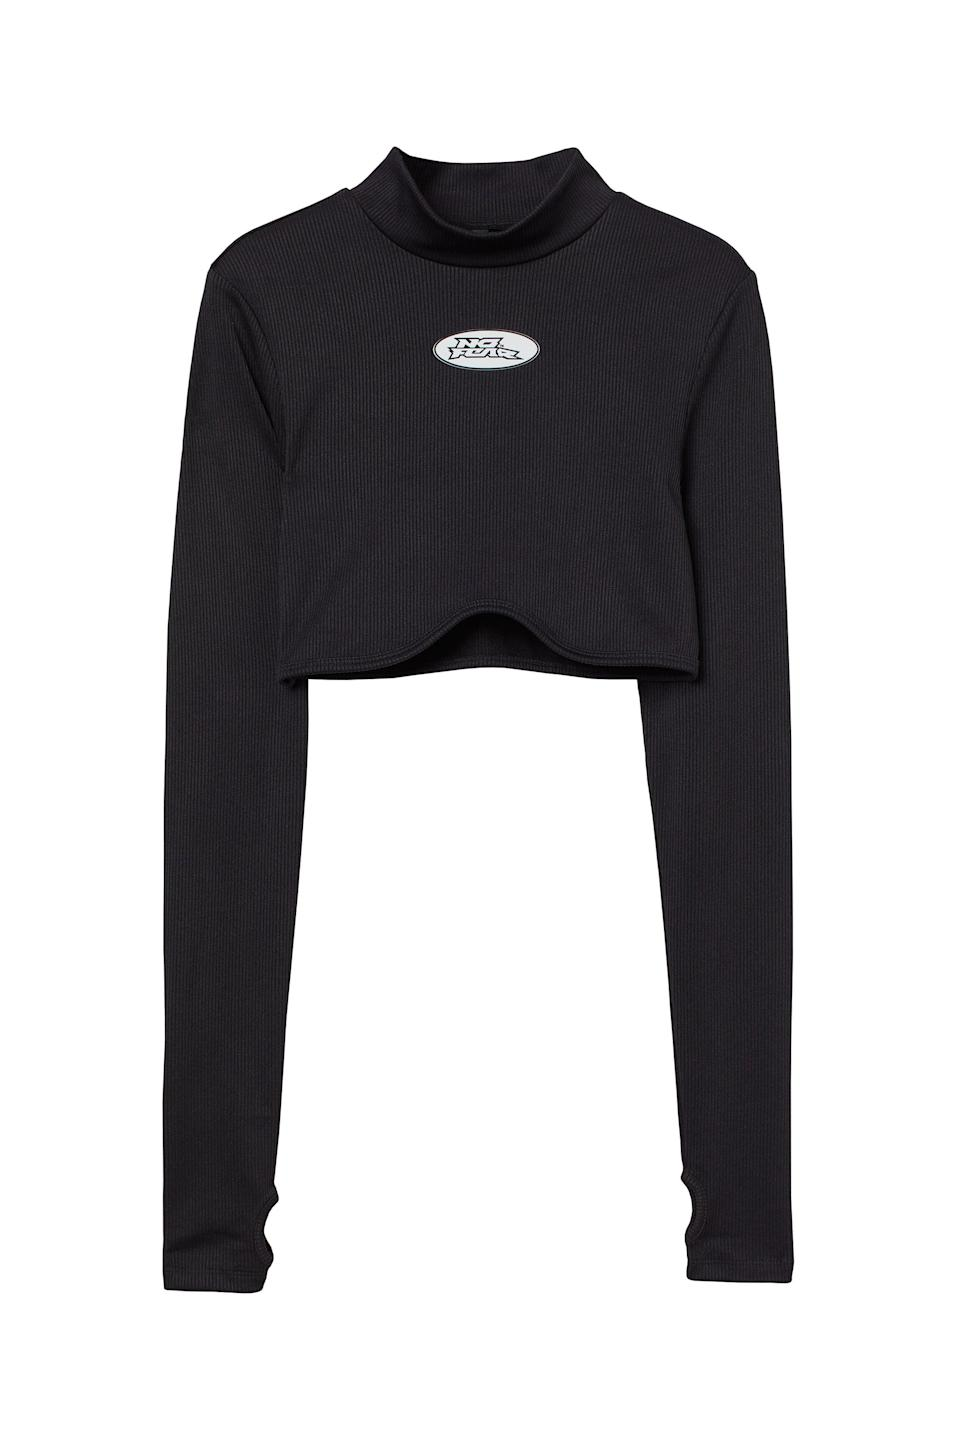 <p>This <span>No Fear x H&amp;M Long-sleeved Crop Top</span> ($18) is always a good thing to have in your wardrobe. The mock neck is great for fall.</p>